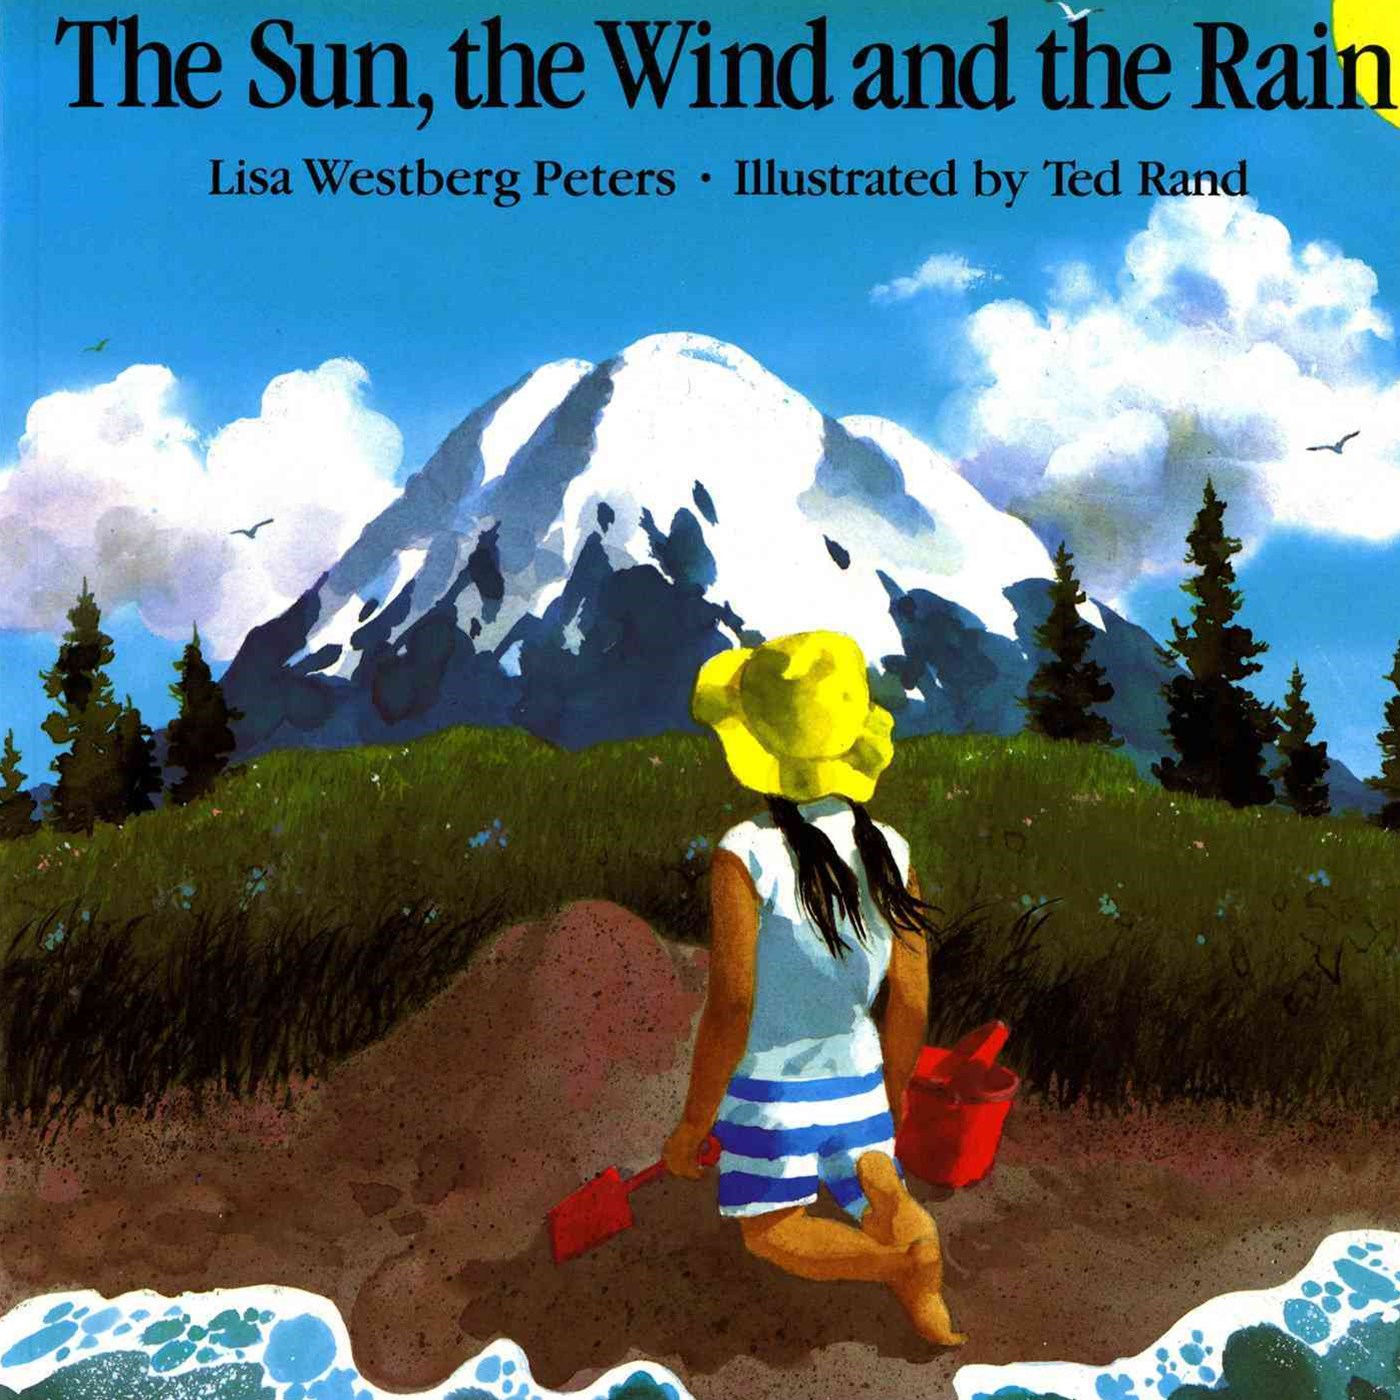 The Sun, the Wind and the Rain